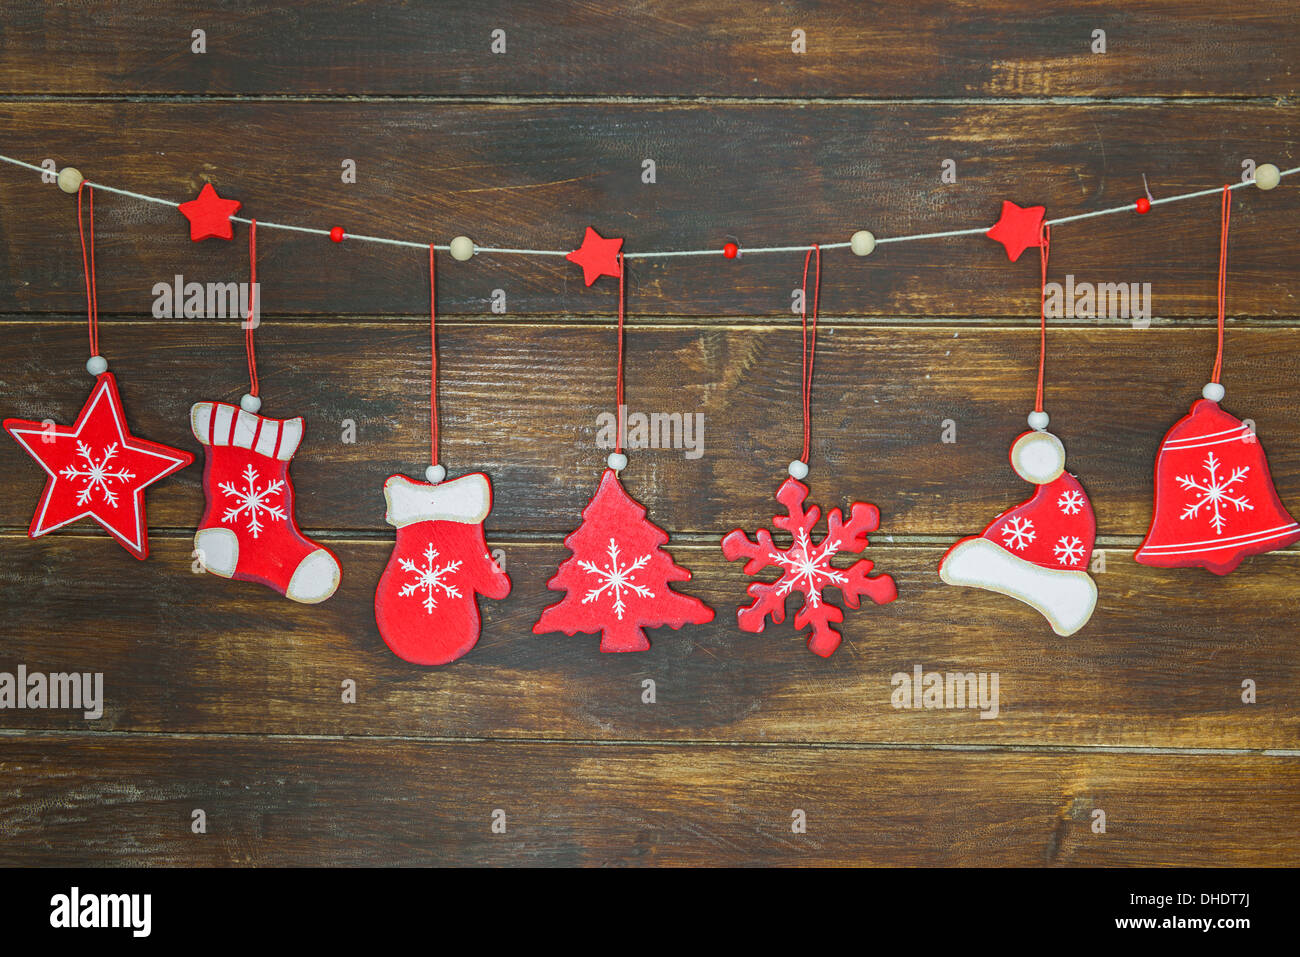 rustic shabby chic christmas decorations hanging on brown wooden board stock image - Chic Christmas Decorations